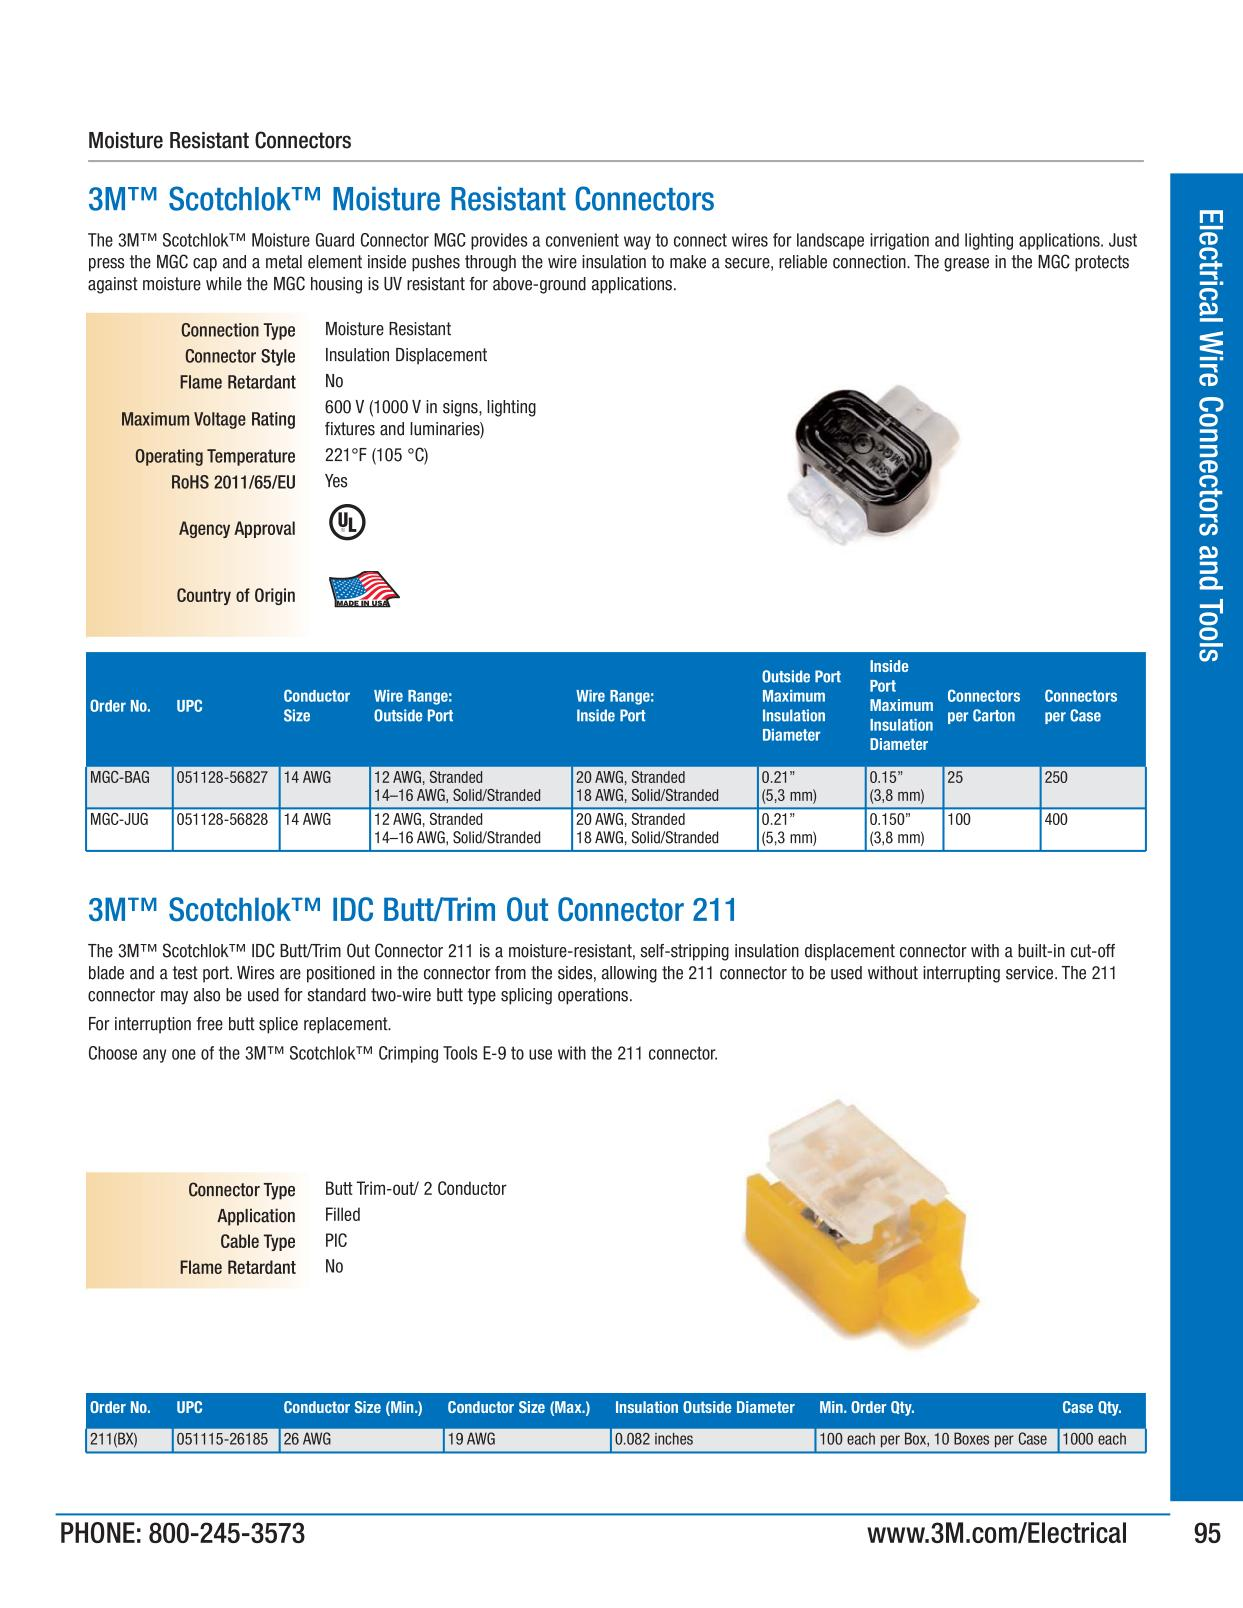 Electrical Wire Connectors and Tools - 3M Electrical Products Page 95